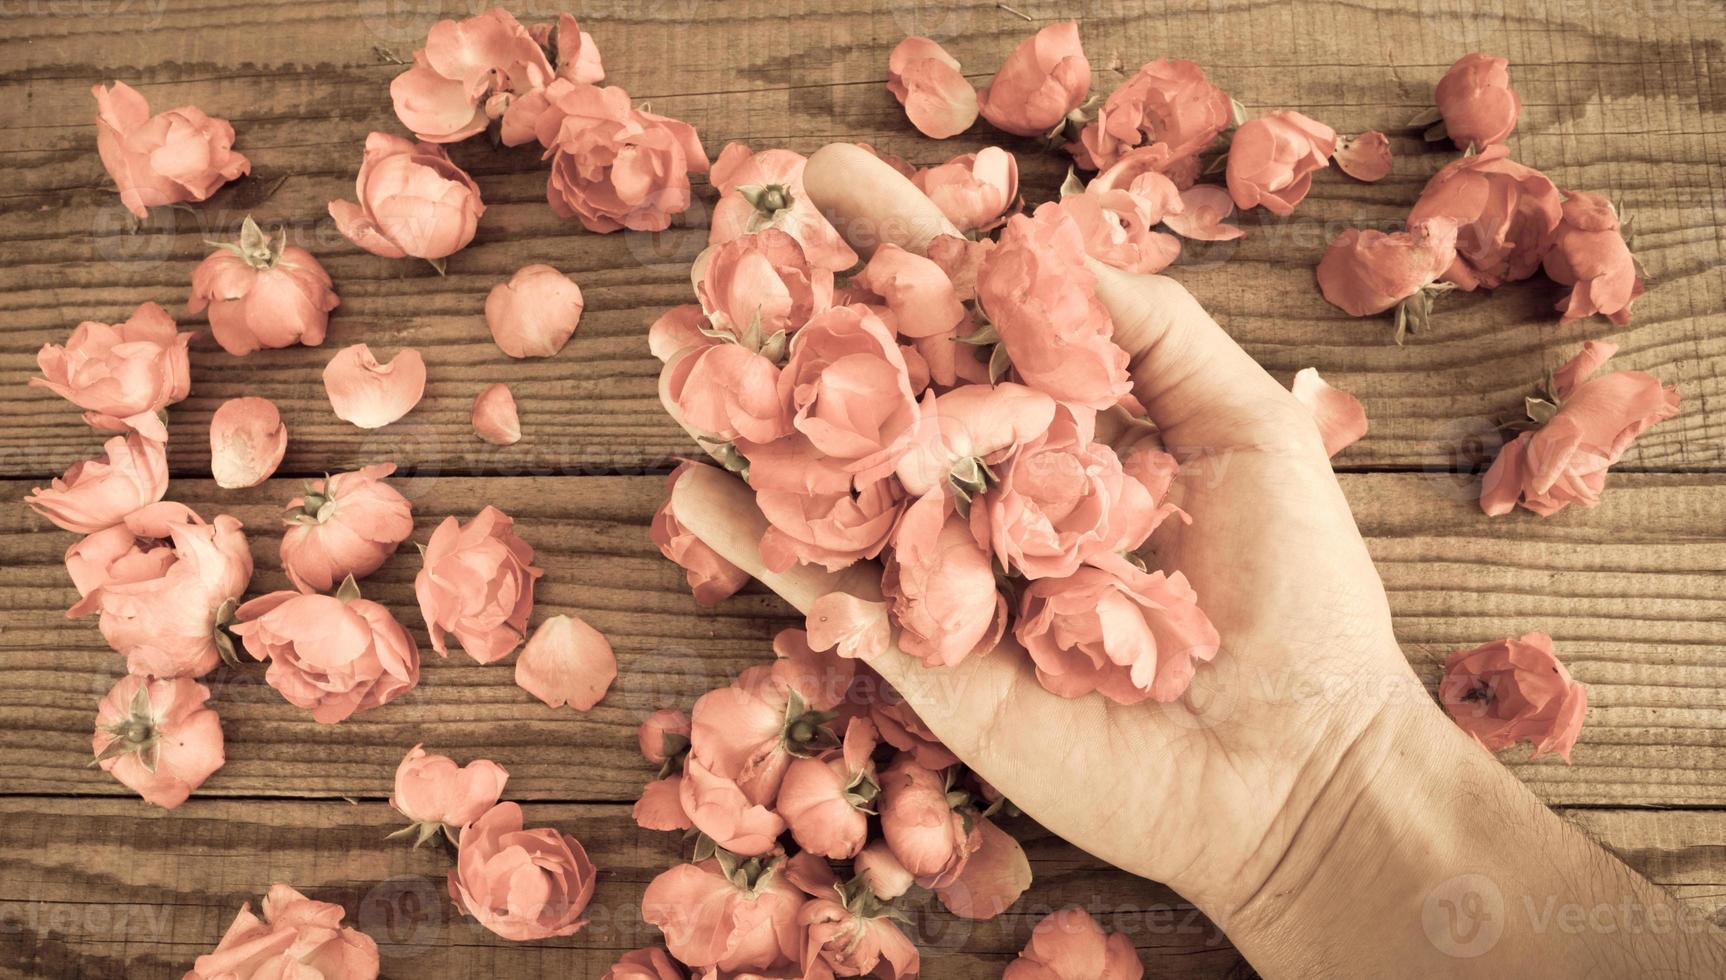 hand among red roses on a wooden table, vintage effect photo